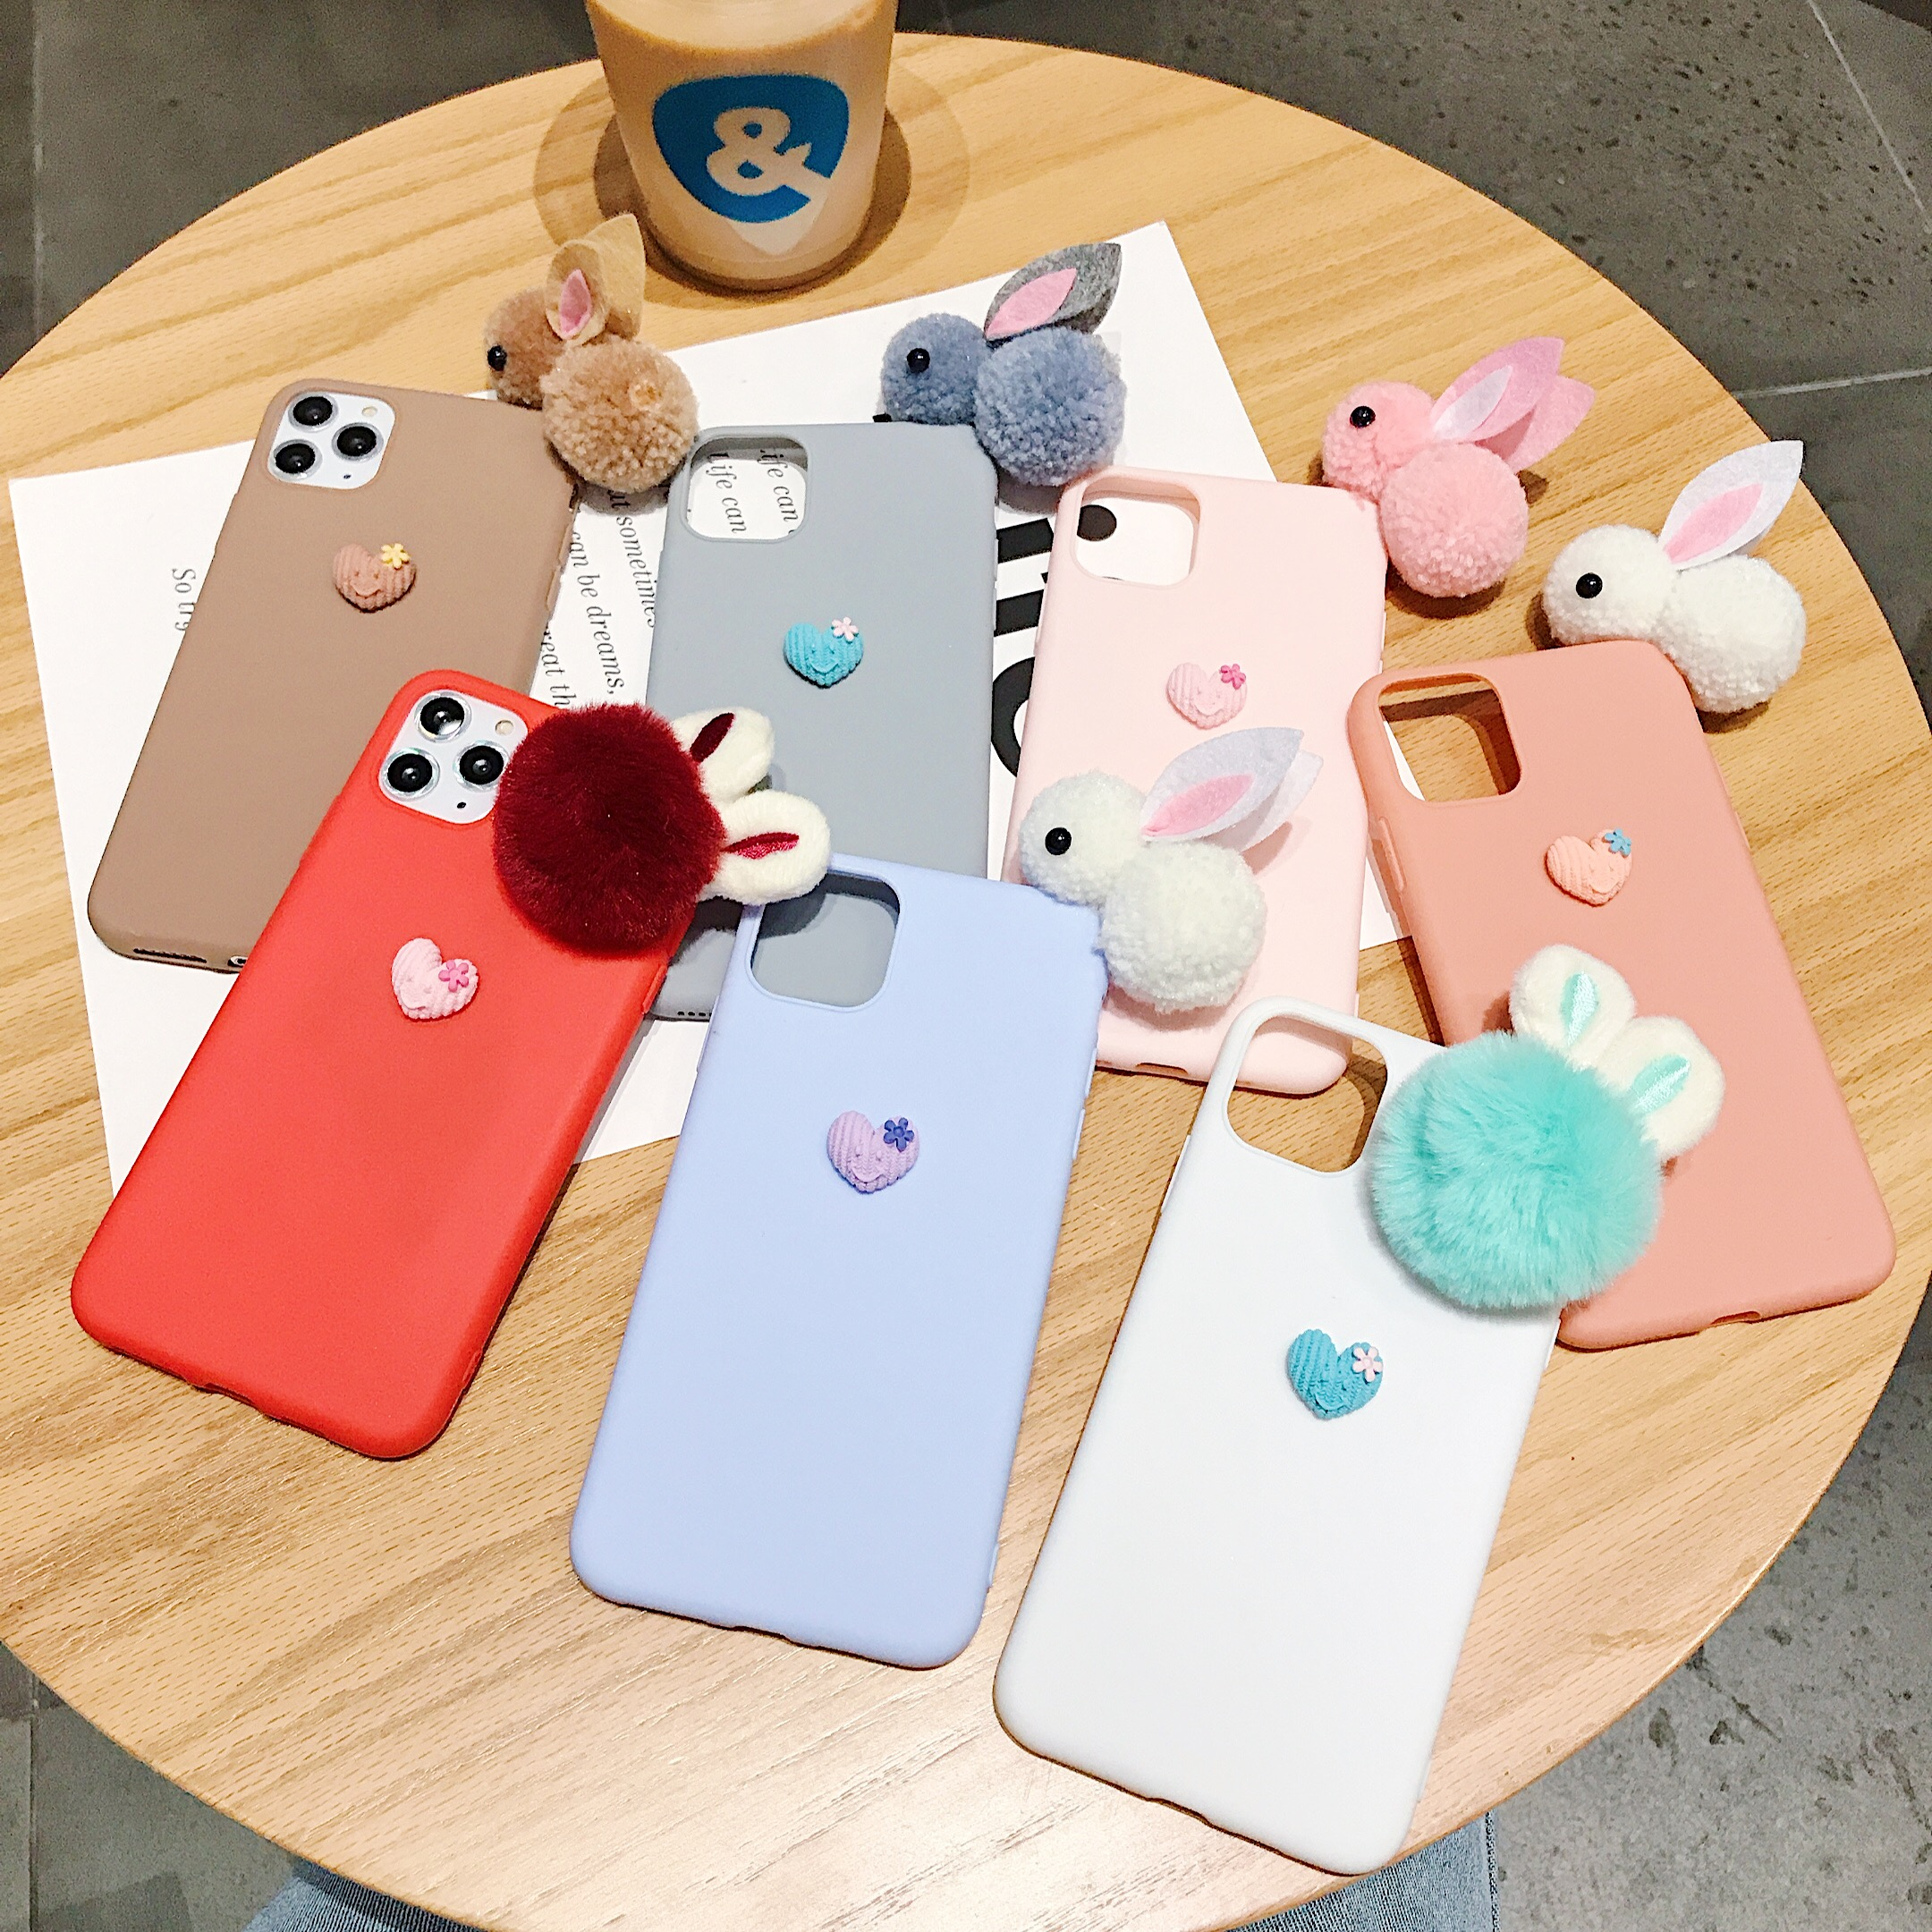 Cute TPU Soft <font><b>Case</b></font> For <font><b>OnePlus</b></font> 5 5T <font><b>6</b></font> 6T New <font><b>3D</b></font> Cartoon Rabbit Plush Doll <font><b>Case</b></font> For <font><b>OnePlus</b></font> 7 7T Pro Candy Color Phone <font><b>Case</b></font> image